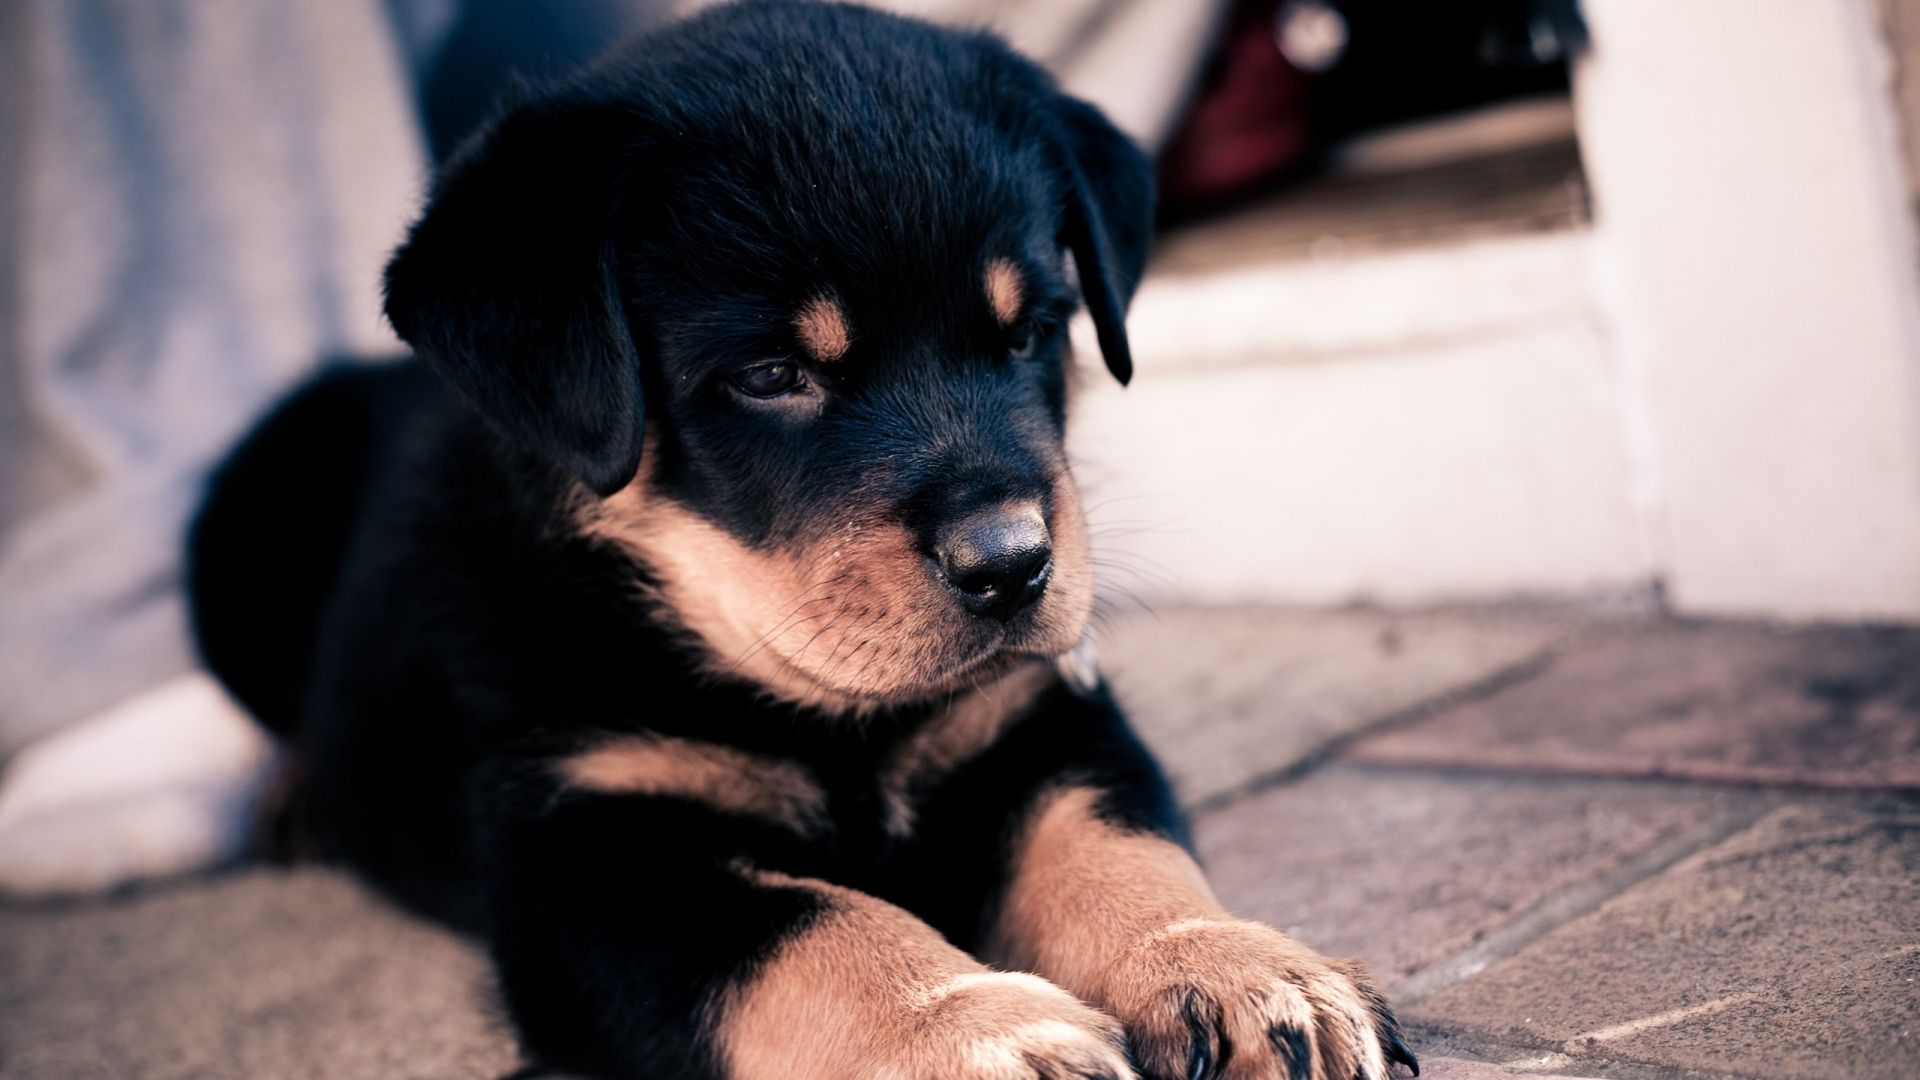 Dogs And Puppies Hd Wallpapers New Tab Theme Chrome New Tab Rottweiler Puppies Cute Baby Animals Rottweiler